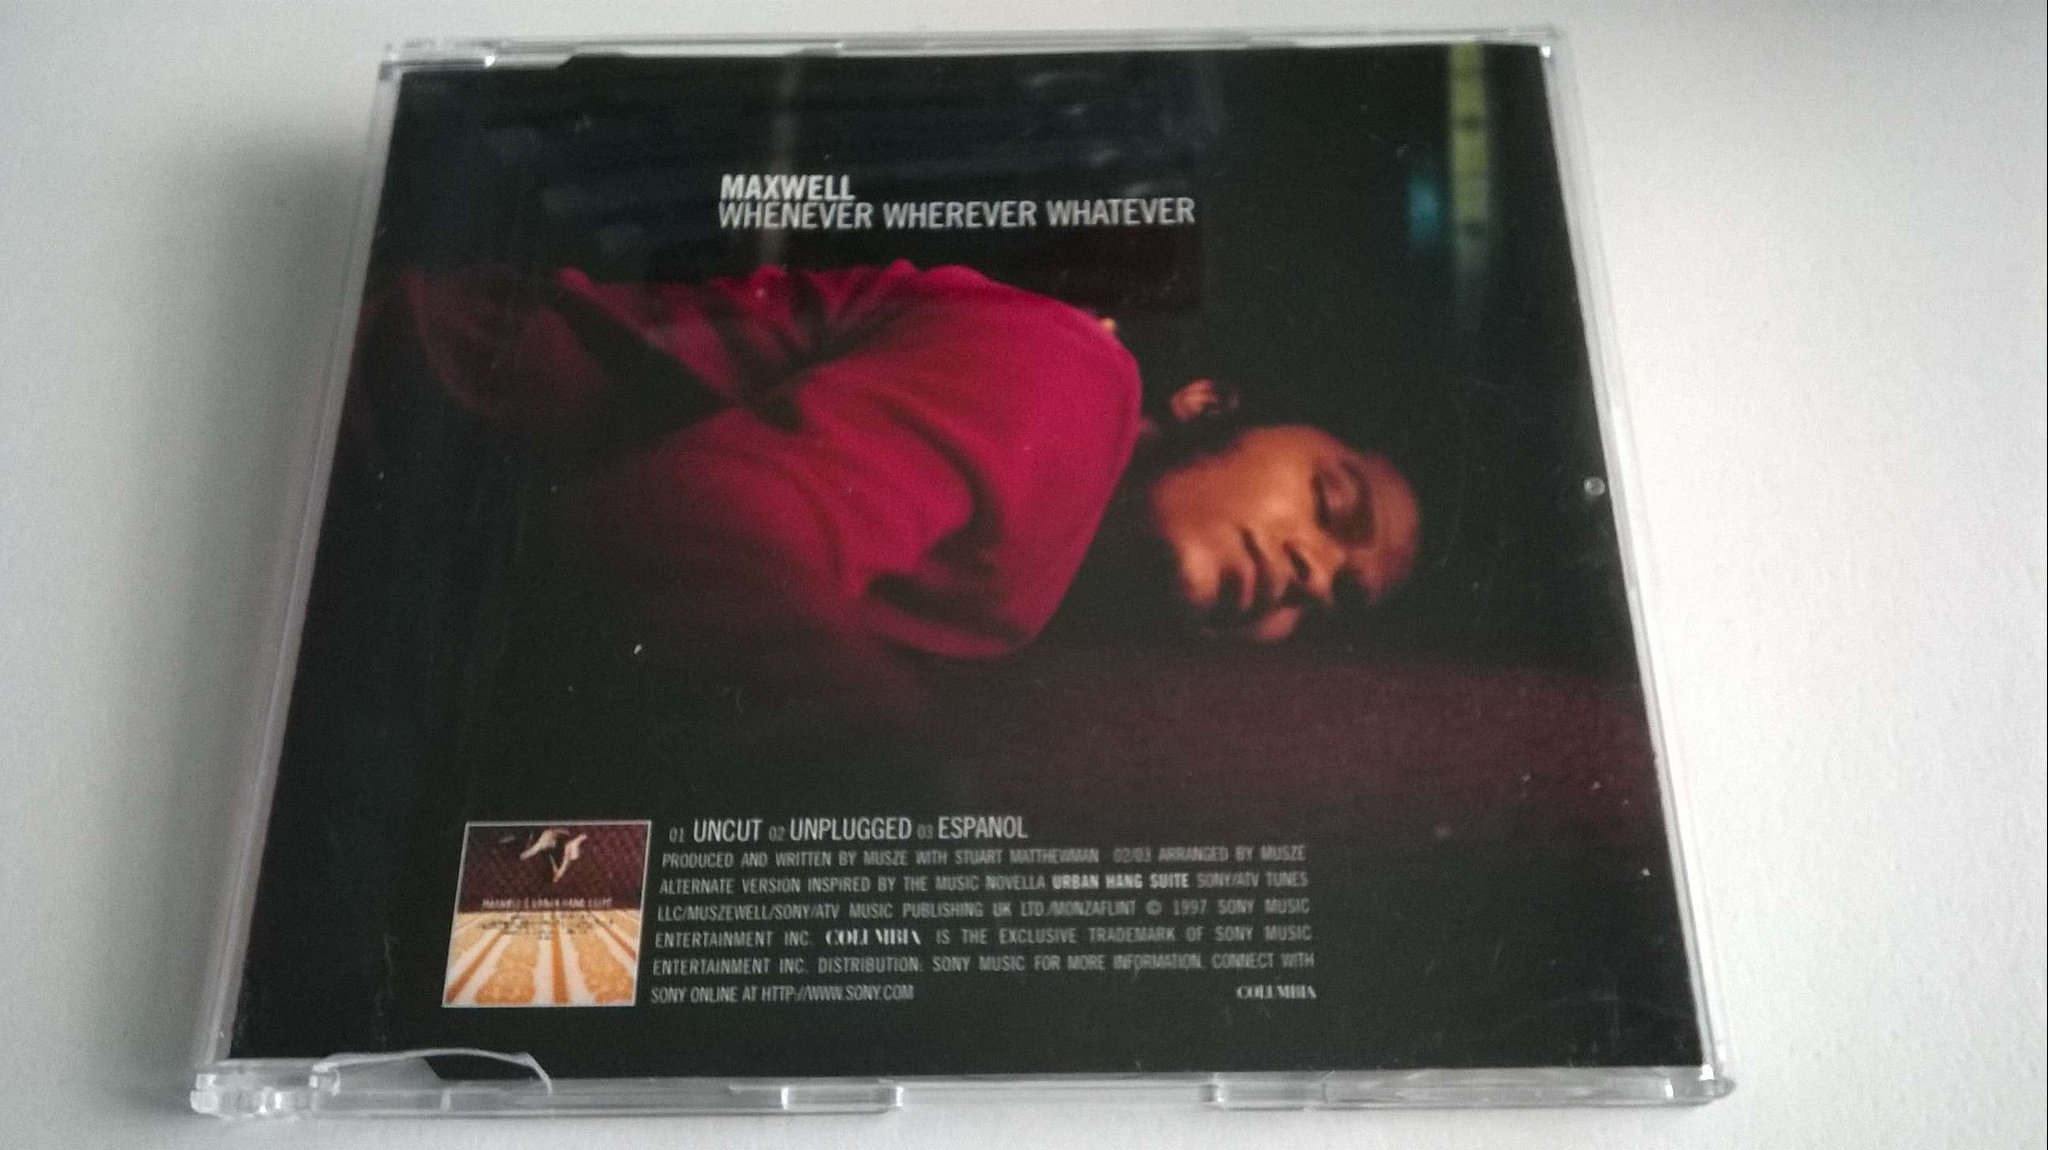 Maxwell - Whenever Wherever Whatever, CD, Single, promo!